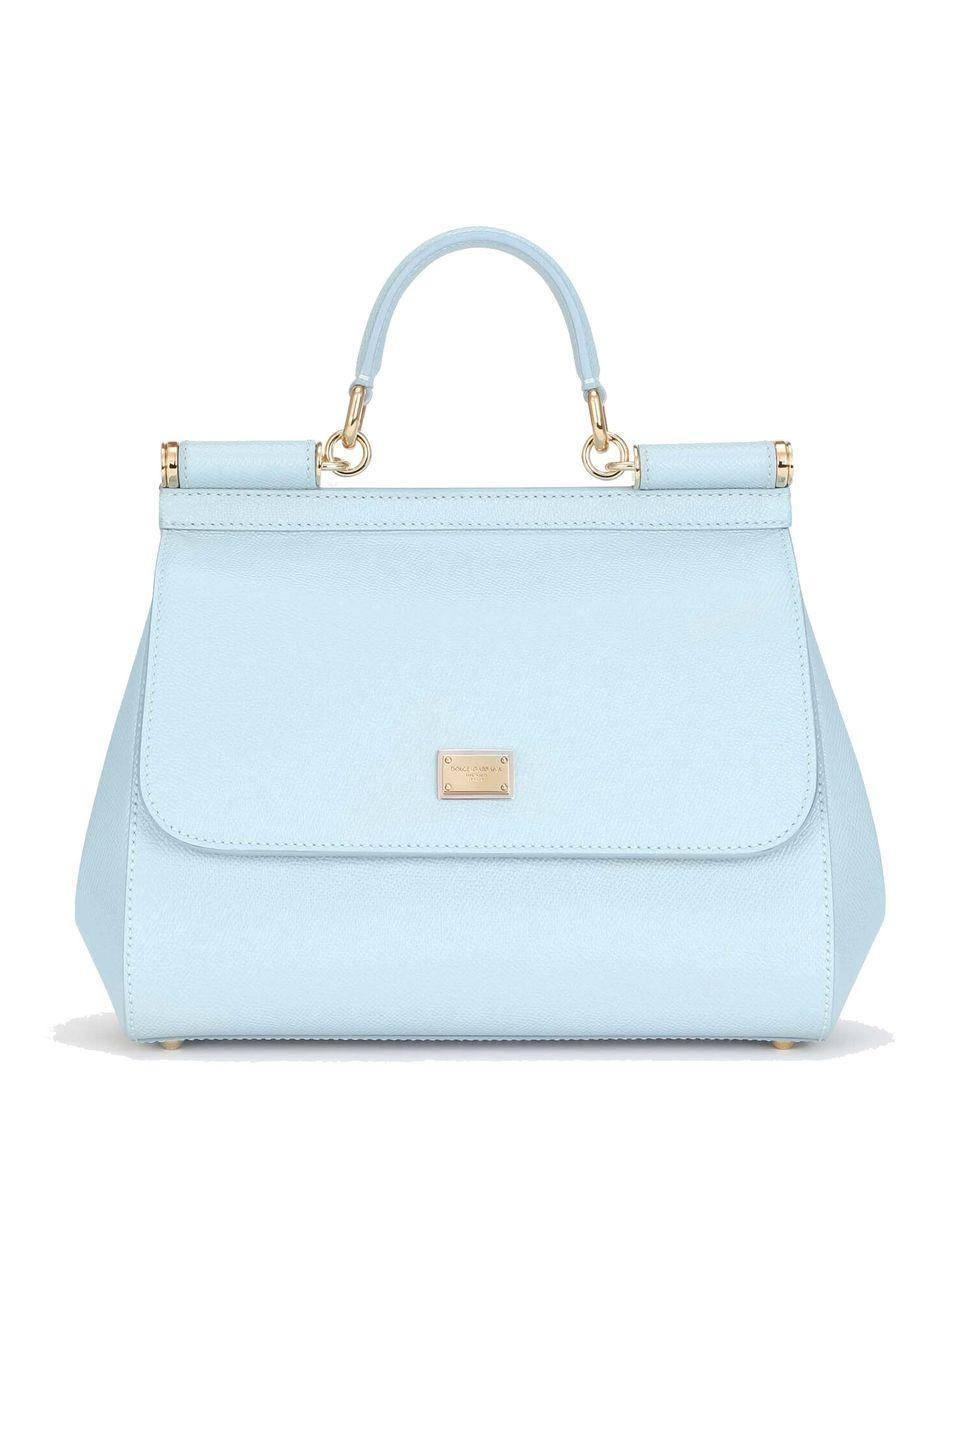 """<p><a class=""""link rapid-noclick-resp"""" href=""""https://www.dolcegabbana.com/en/women/bags/handbags/medium-sicily-bag-in-dauphine-calfskin-azure-BB6002A10018H682.html"""" rel=""""nofollow noopener"""" target=""""_blank"""" data-ylk=""""slk:SHOP NOW"""">SHOP NOW</a></p><p>Dolce & Gabana's Sicily bag comes in a number of different pastel hues, and is a year-round winner. The ladylike silhouette means it can dress up any ensemble, but it is also the perfect size for carrying around day to day.</p><p>Leather bag, £1,200, <a href=""""https://www.dolcegabbana.com/en/women/bags/handbags/medium-sicily-bag-in-dauphine-calfskin-azure-BB6002A10018H682.html"""" rel=""""nofollow noopener"""" target=""""_blank"""" data-ylk=""""slk:Dolce & Gabbana"""" class=""""link rapid-noclick-resp"""">Dolce & Gabbana</a></p>"""